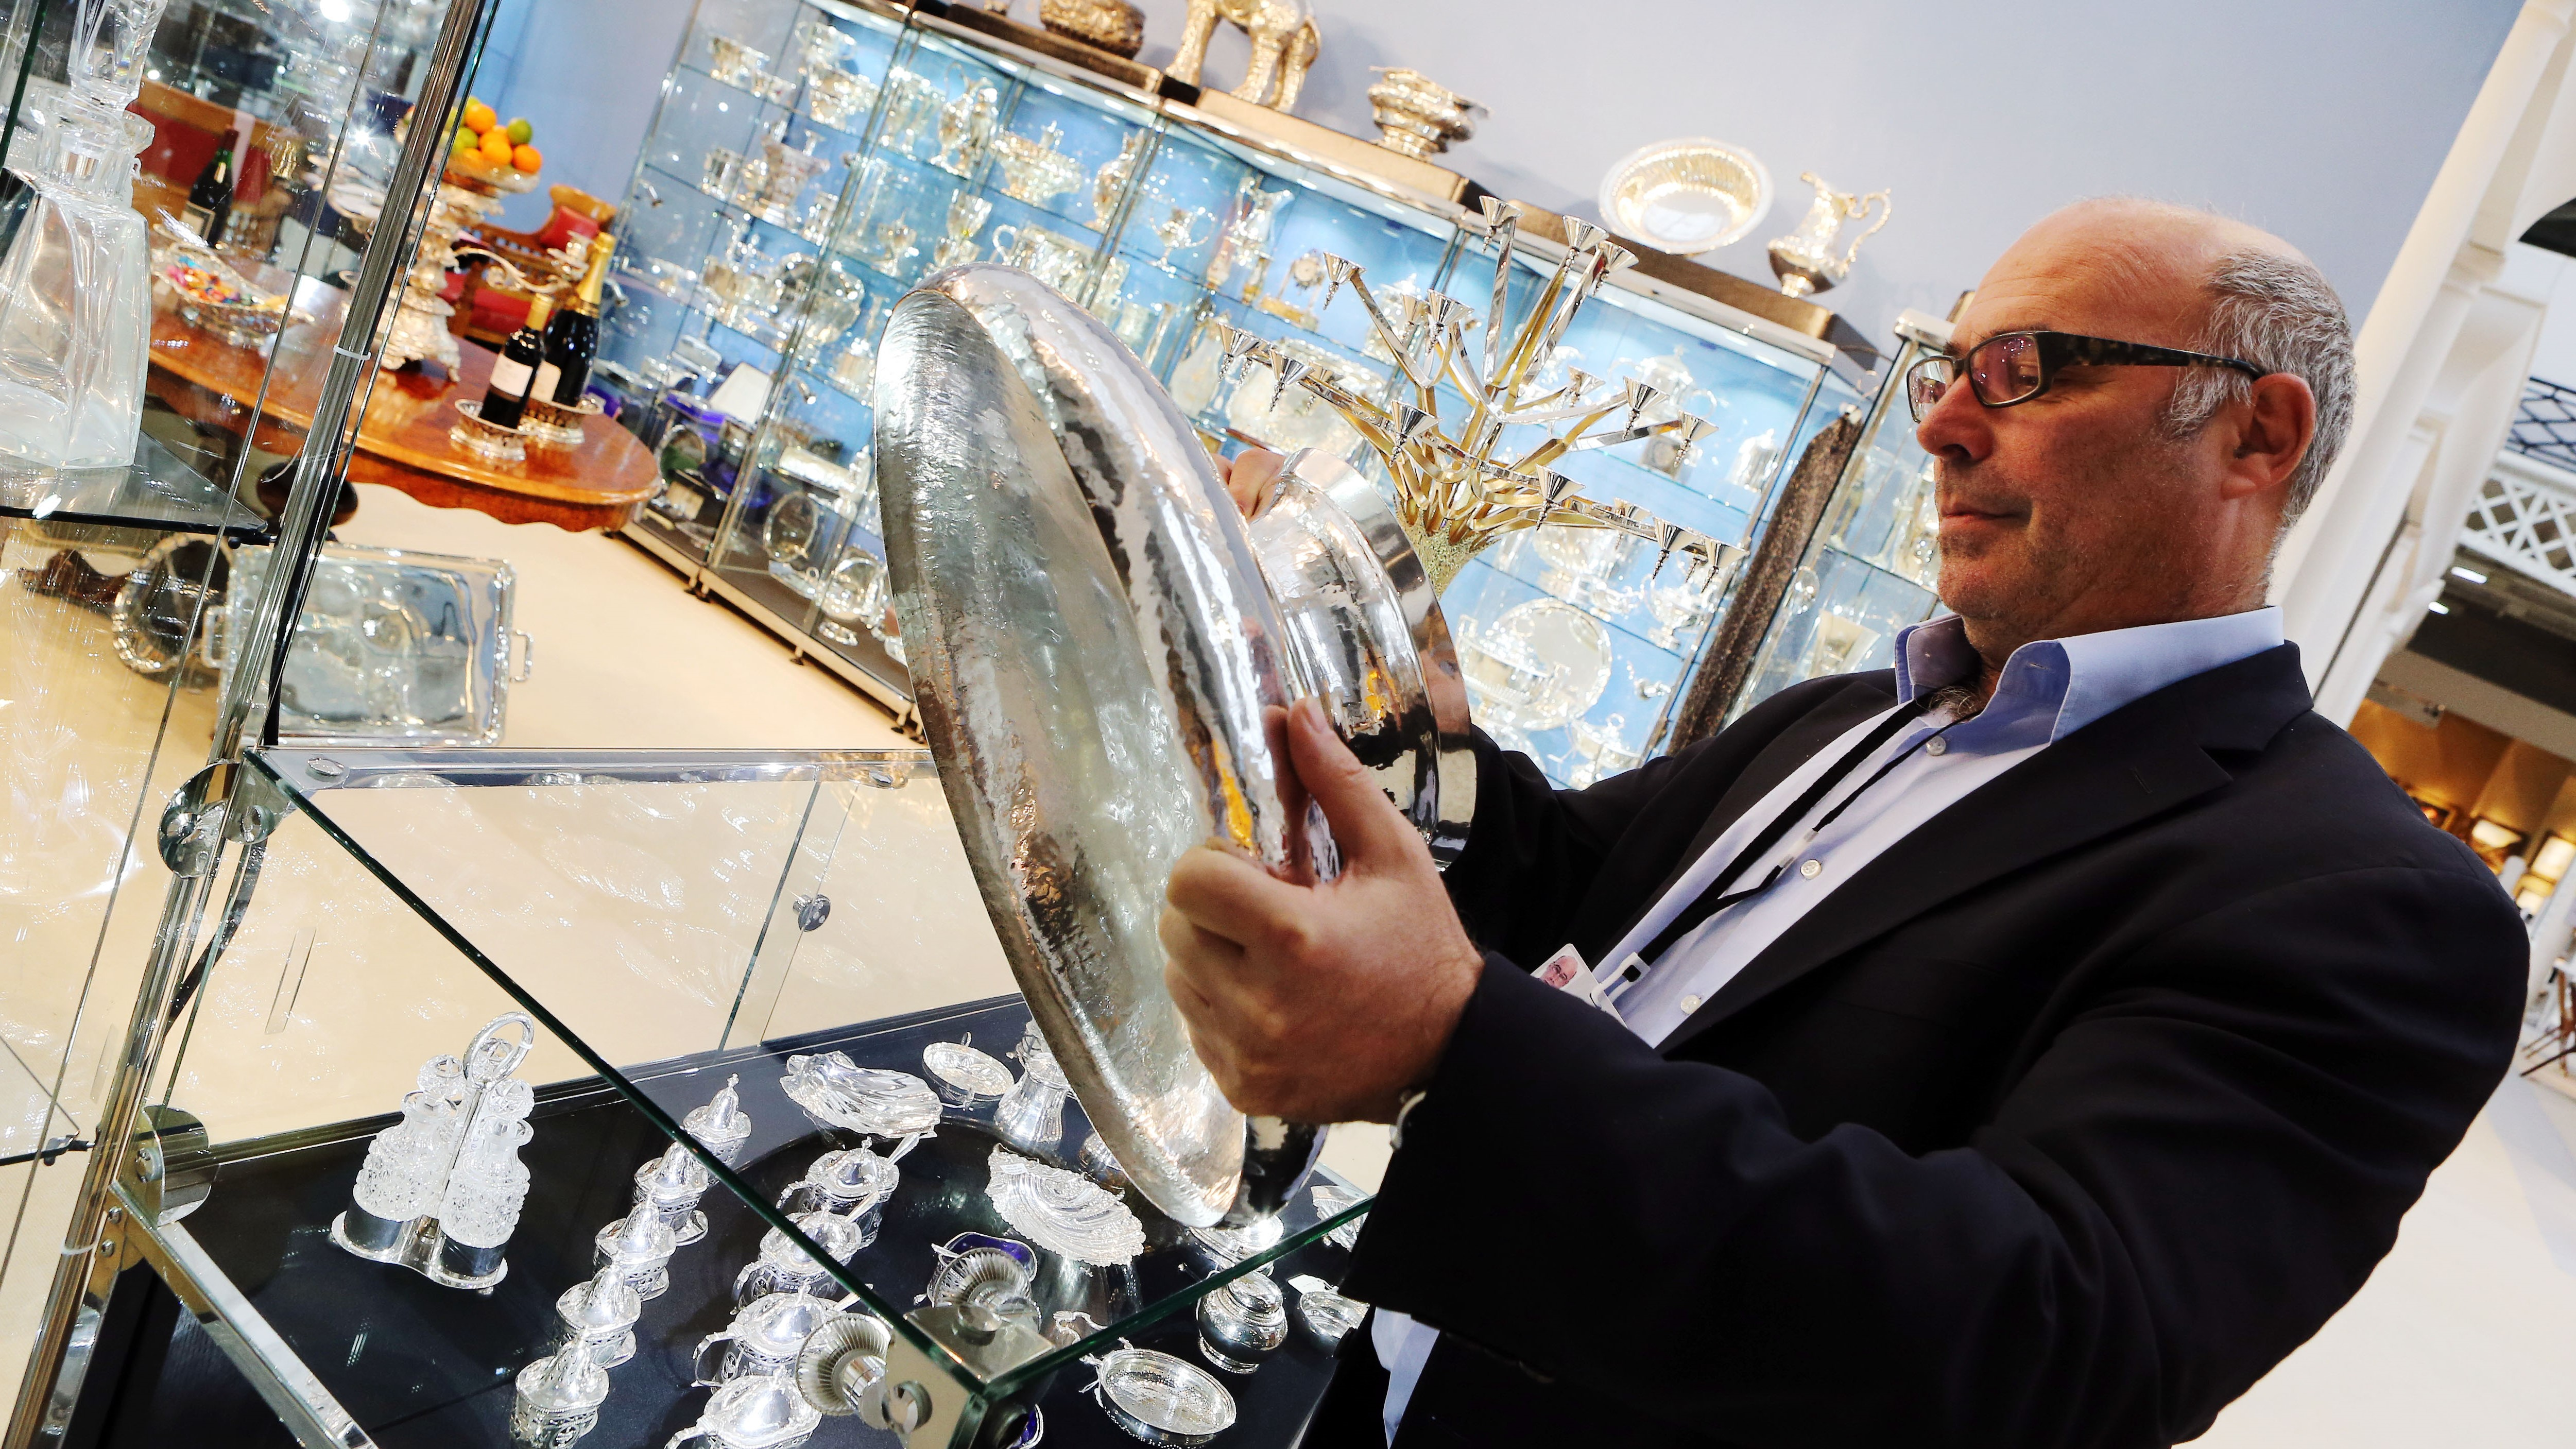 Winter Art & Antiques returns to Olympia London